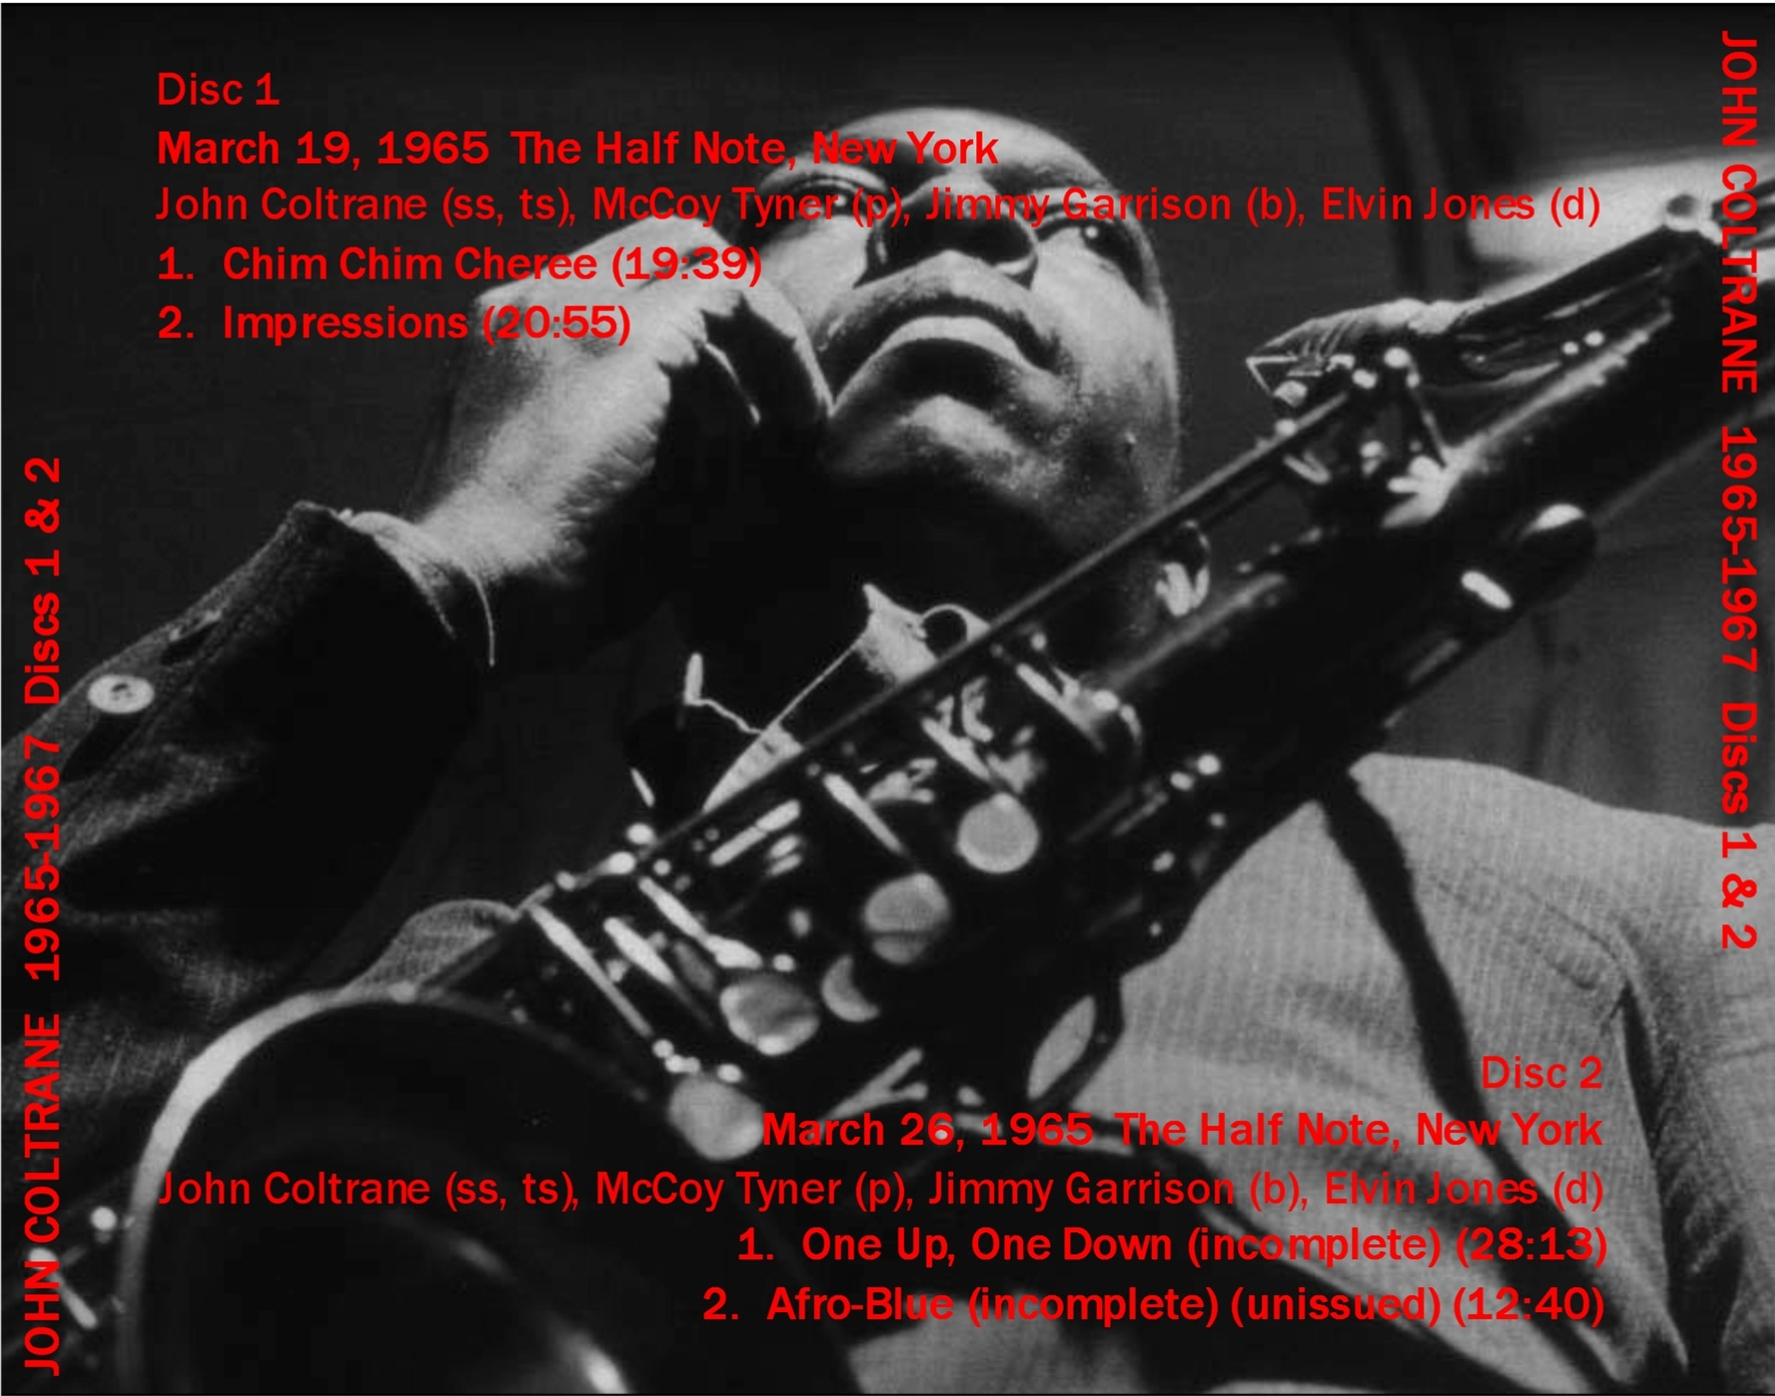 JohnColtrane1965-1967LateTraneCollection_pt1 (1).jpg